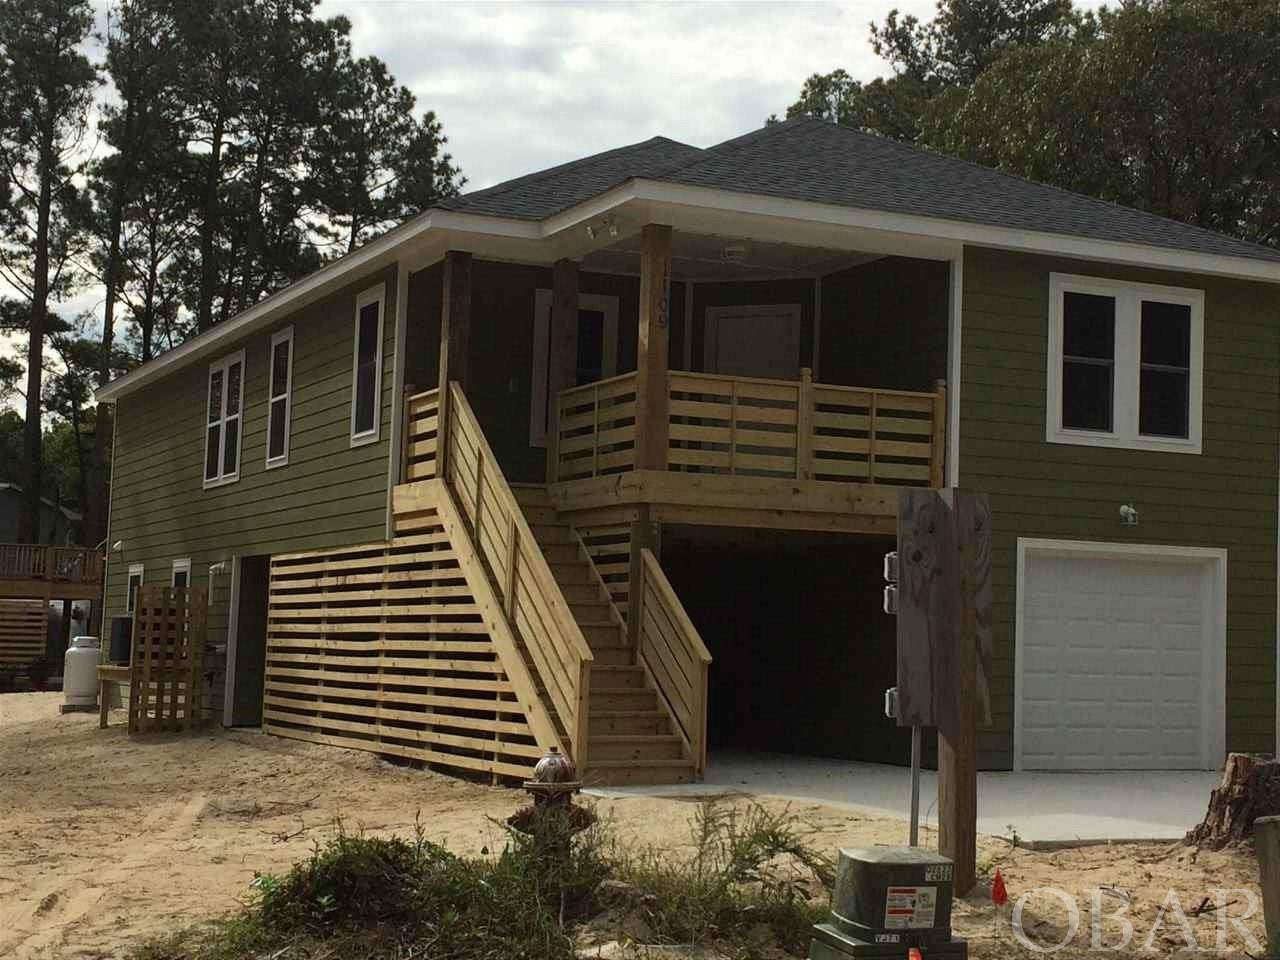 1109 Holly Street,Kill Devil Hills,NC 27948,4 Bedrooms Bedrooms,3 BathroomsBathrooms,Residential,Holly Street,94535